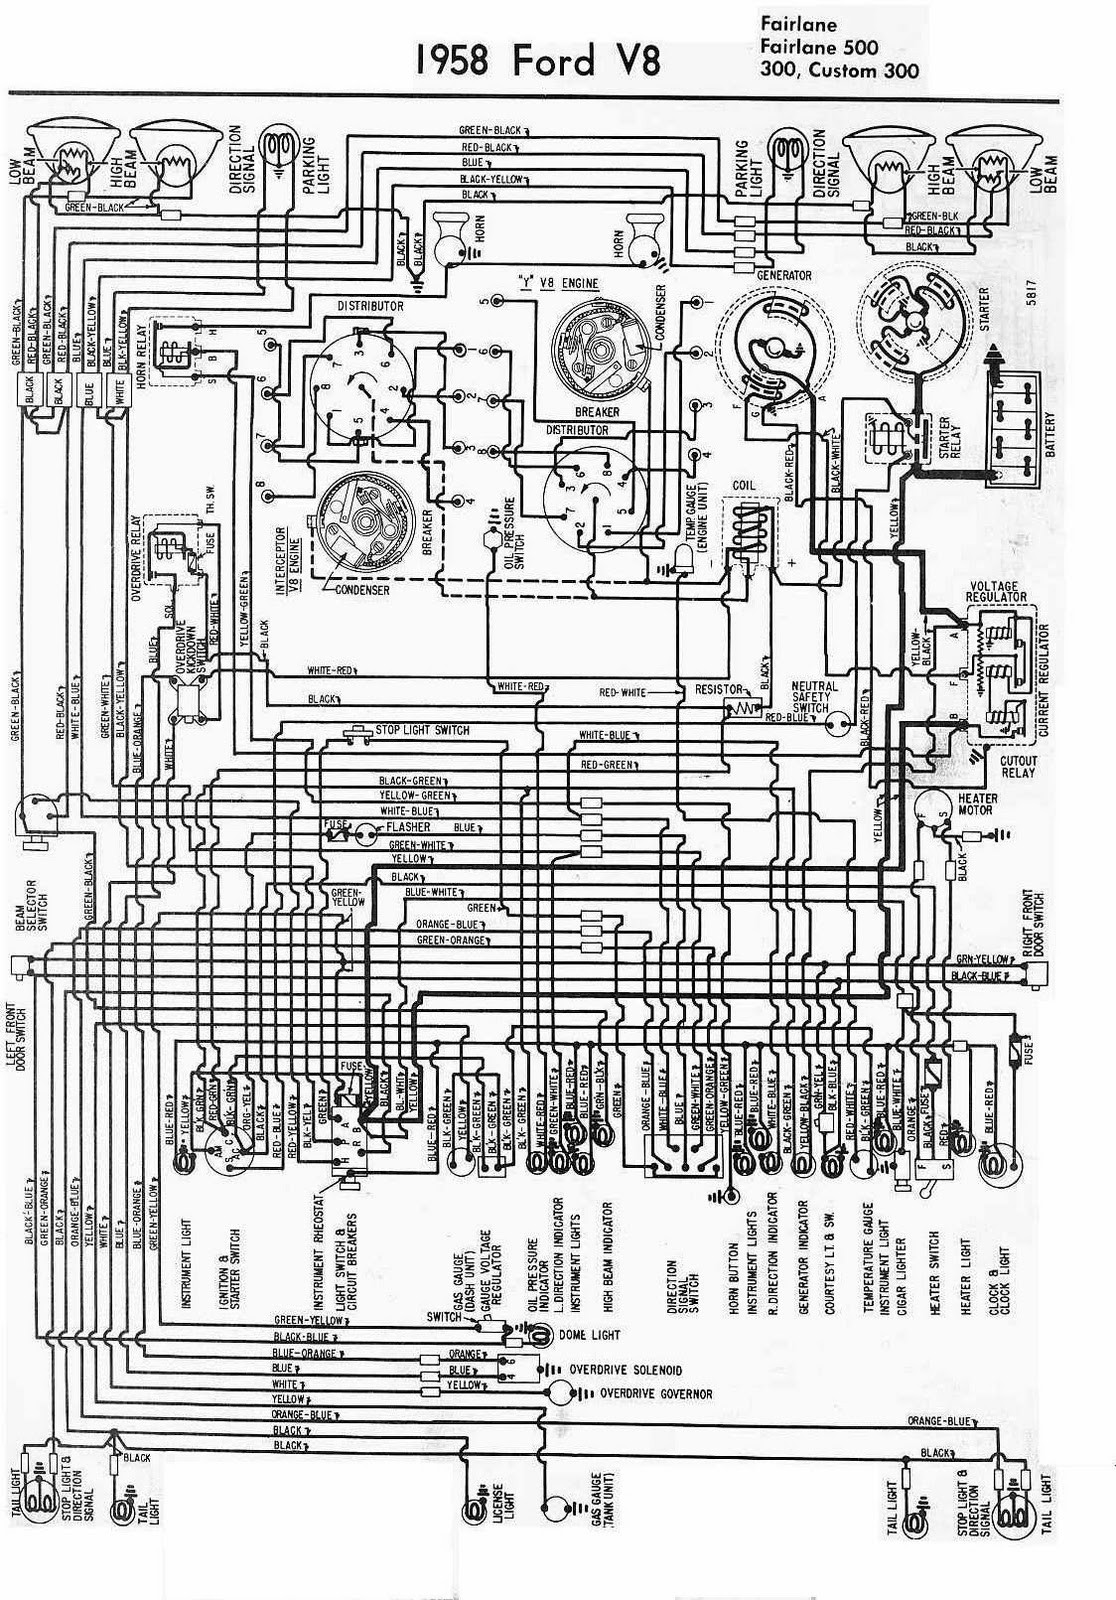 1958 Ford Ranchero Headlight Switch Wiring Diagram Simple 1956 Schematic Ignition Image 95 T Bird